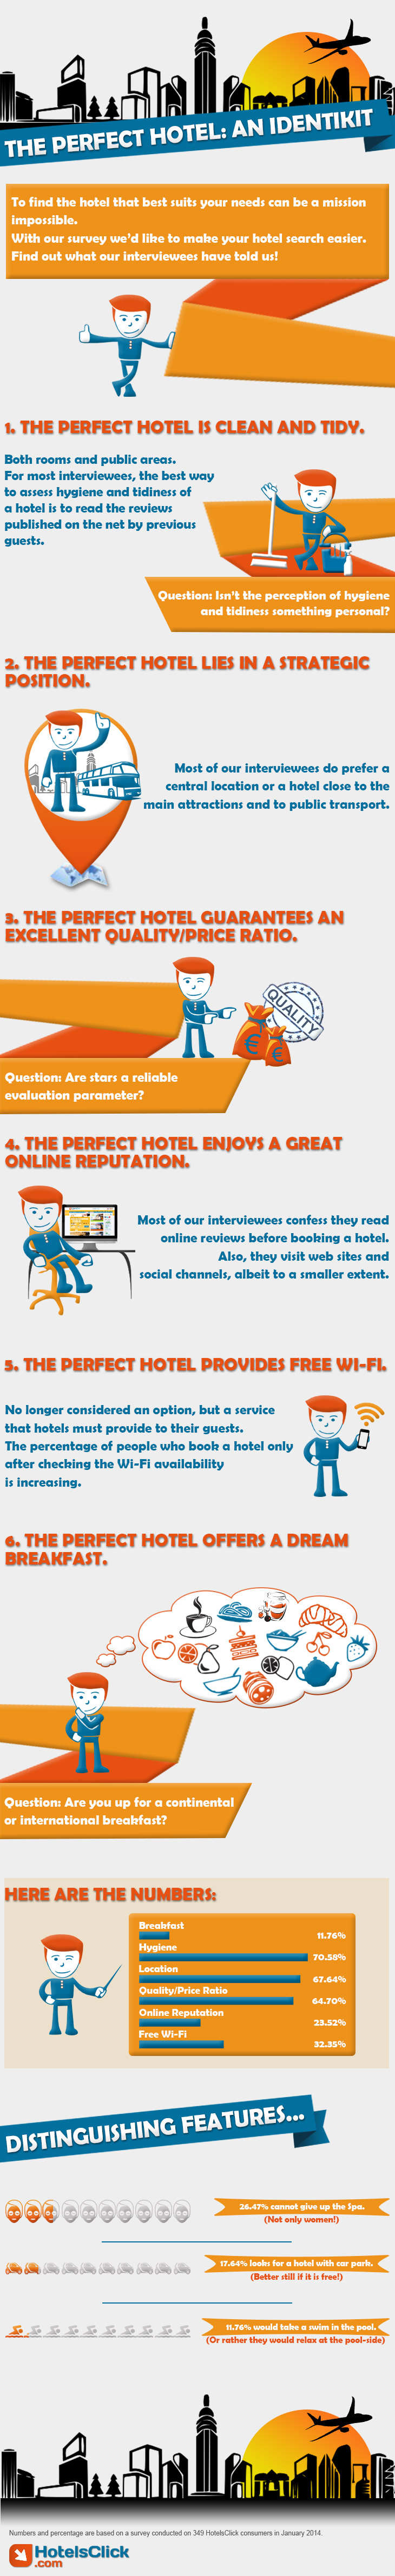 Check out the identikit of the perfect hotel!